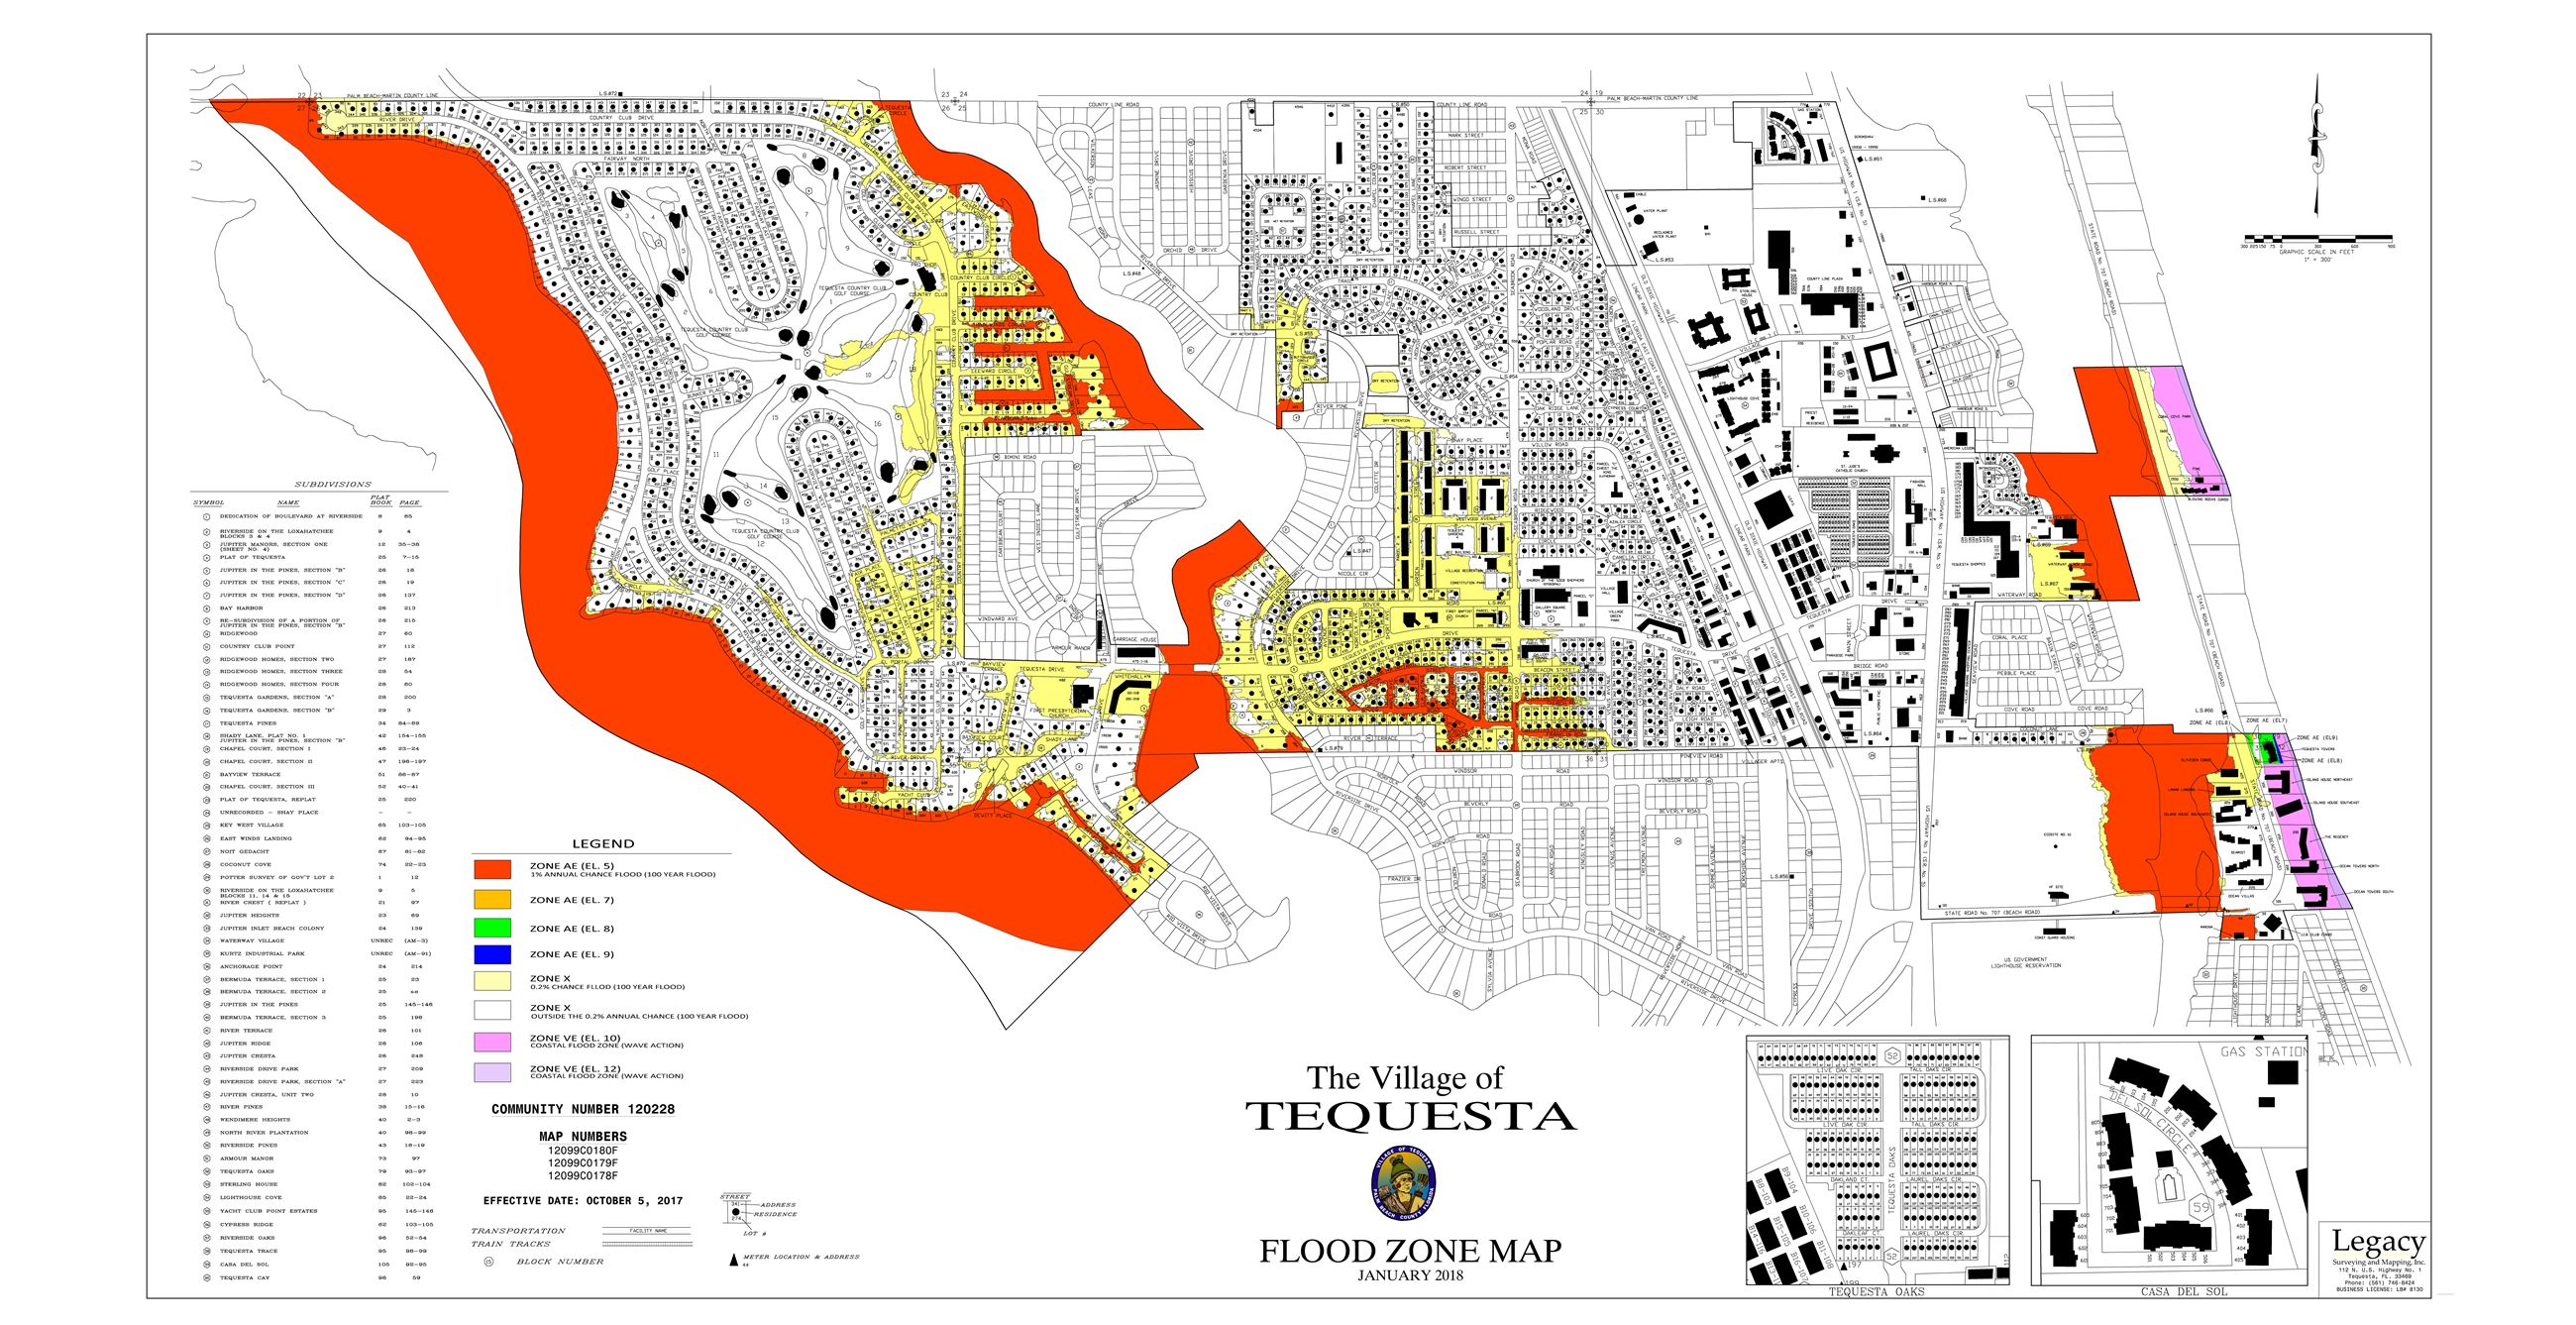 Tequesta Flood Zone Wall Map Building Department 36x70 HIGHEST